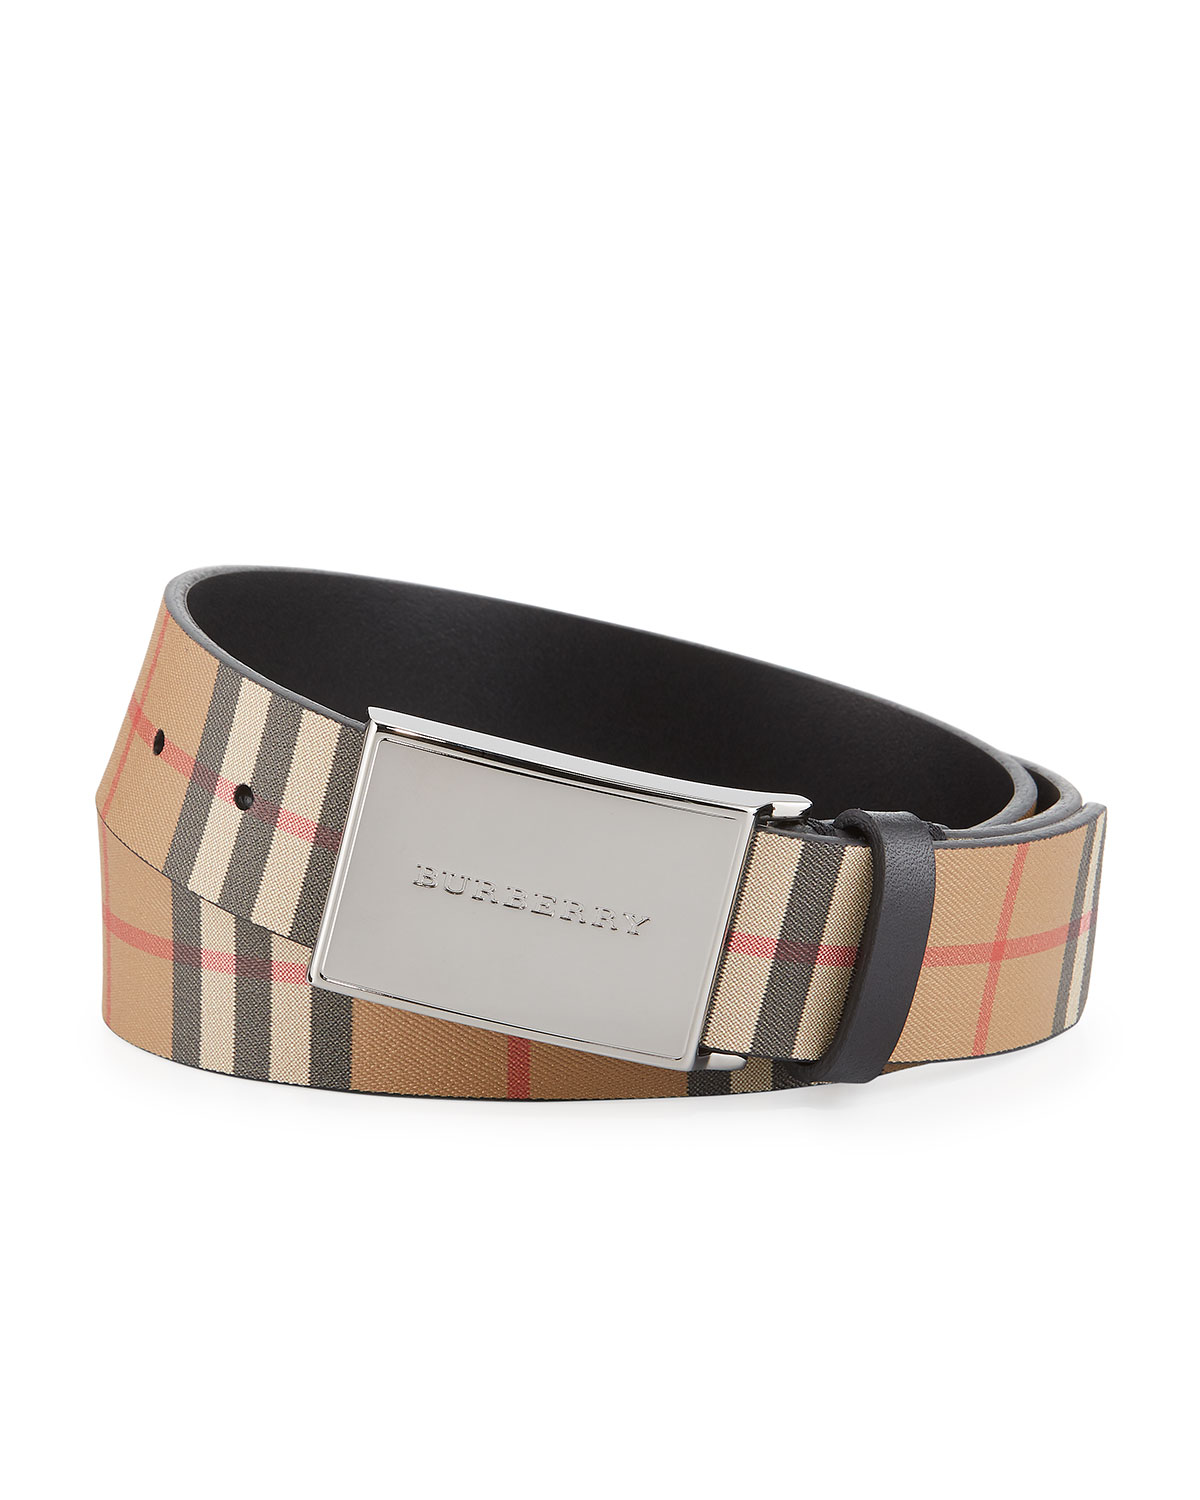 0a10515e7 Burberry Men's Charles Check Leather Belt | Neiman Marcus